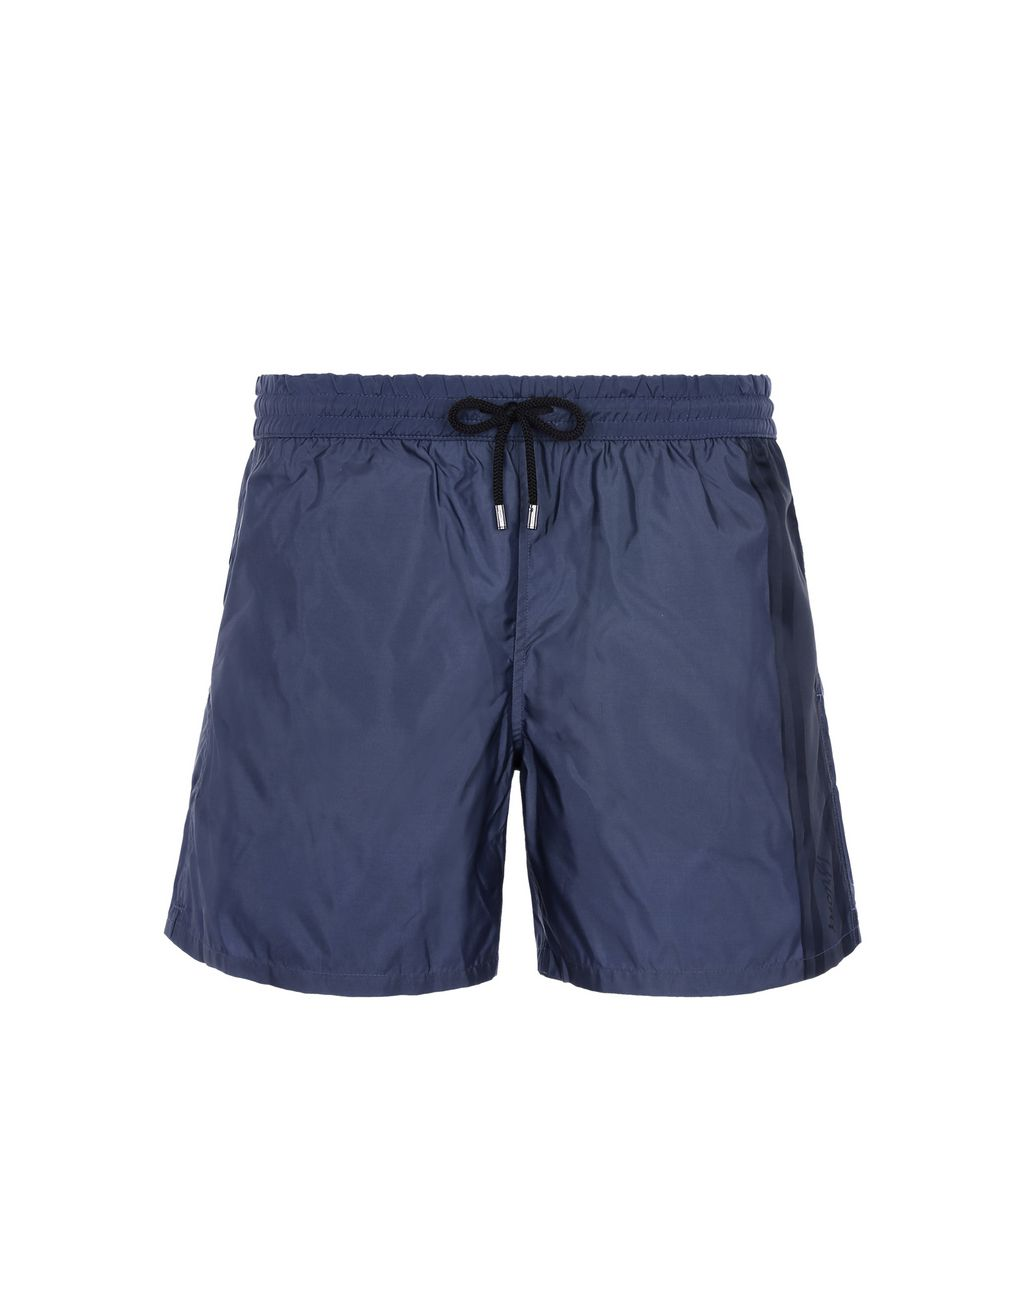 BRIONI Blue Swimming Boxers Beachwear Man f